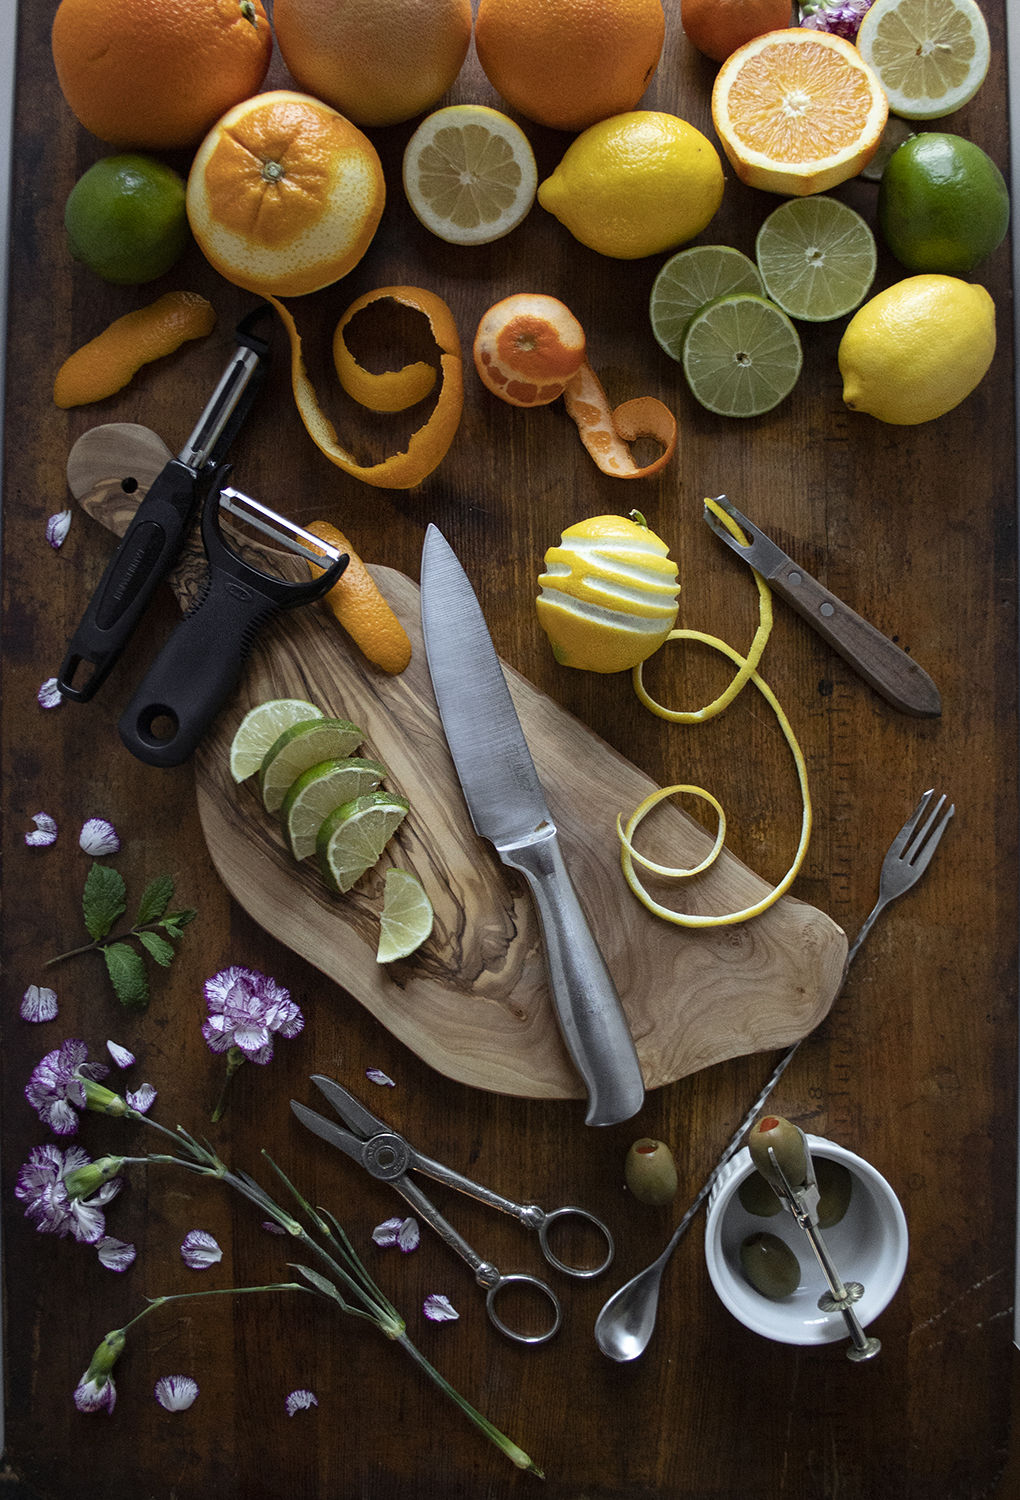 citrus fruits, flowers, and olives on a wooden table